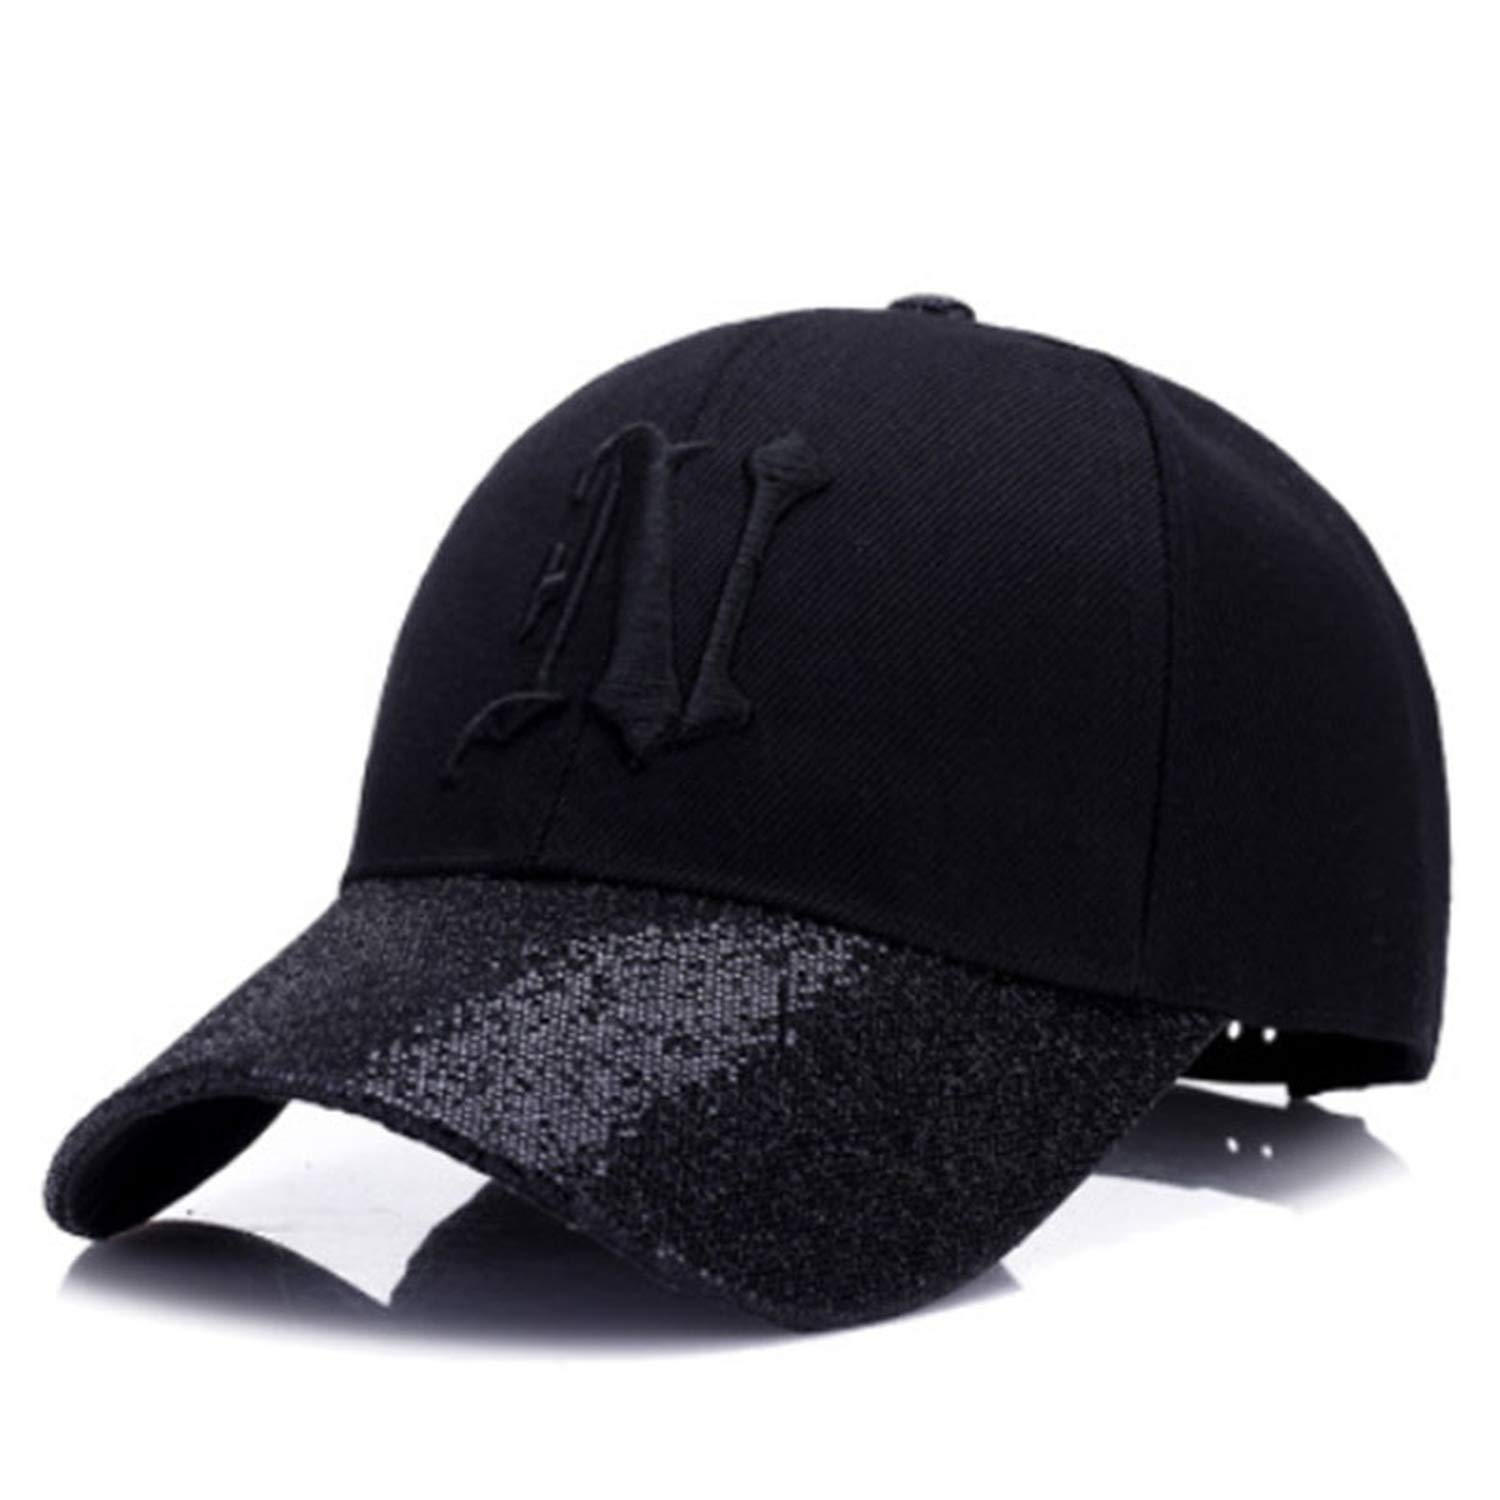 NAAO New Ladies Letter Embroidered Baseball Cap Sequins Fashion Casual Curved Hats Girls can Adjust Hip hop Hats